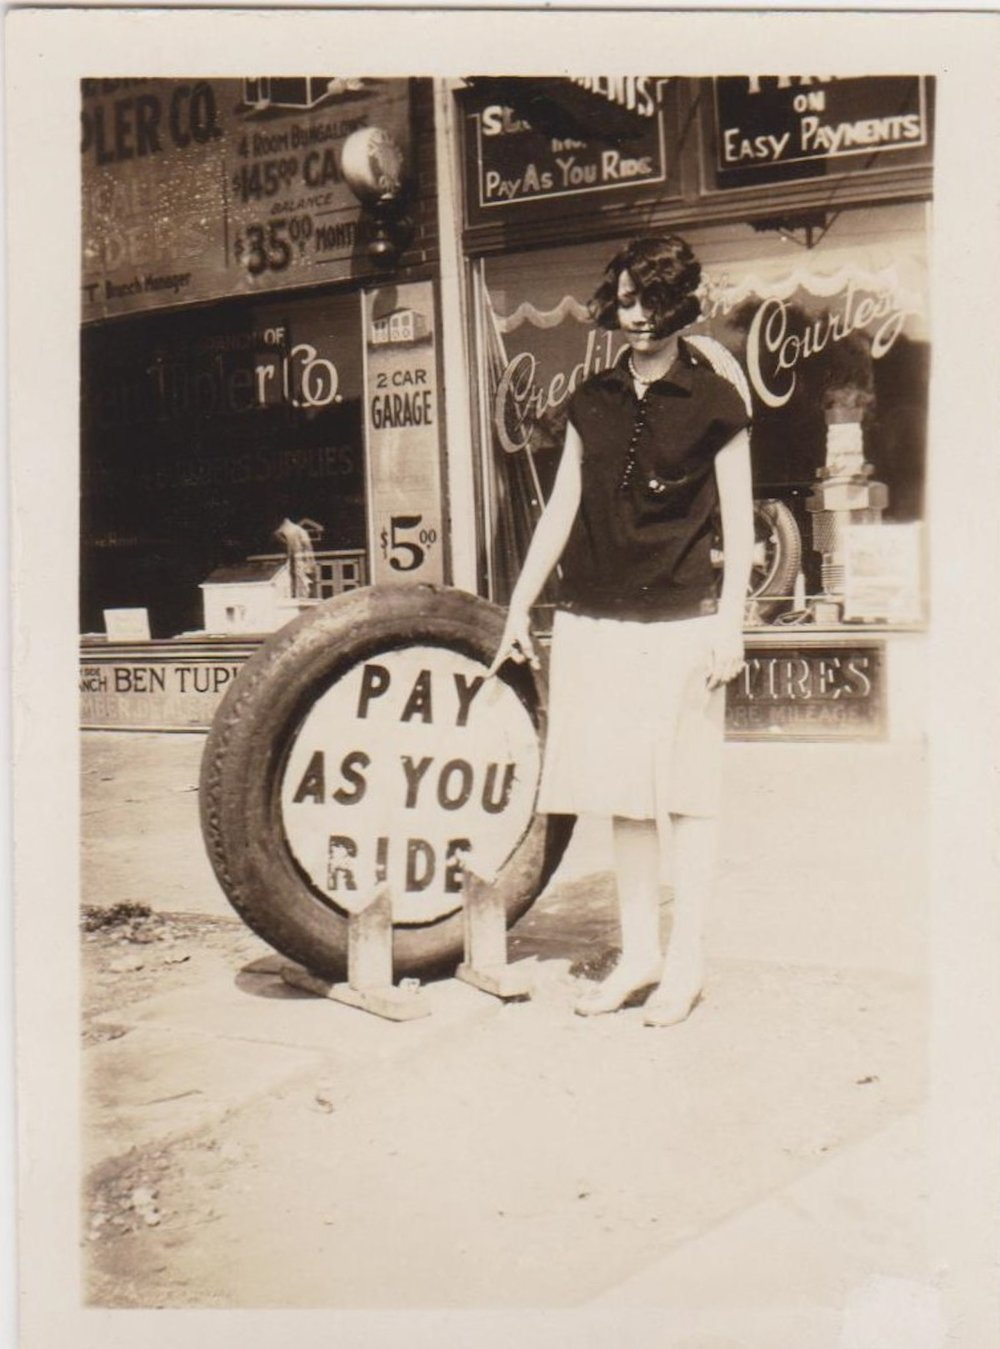 Pay as you ride! Vintage photos of women and signs.